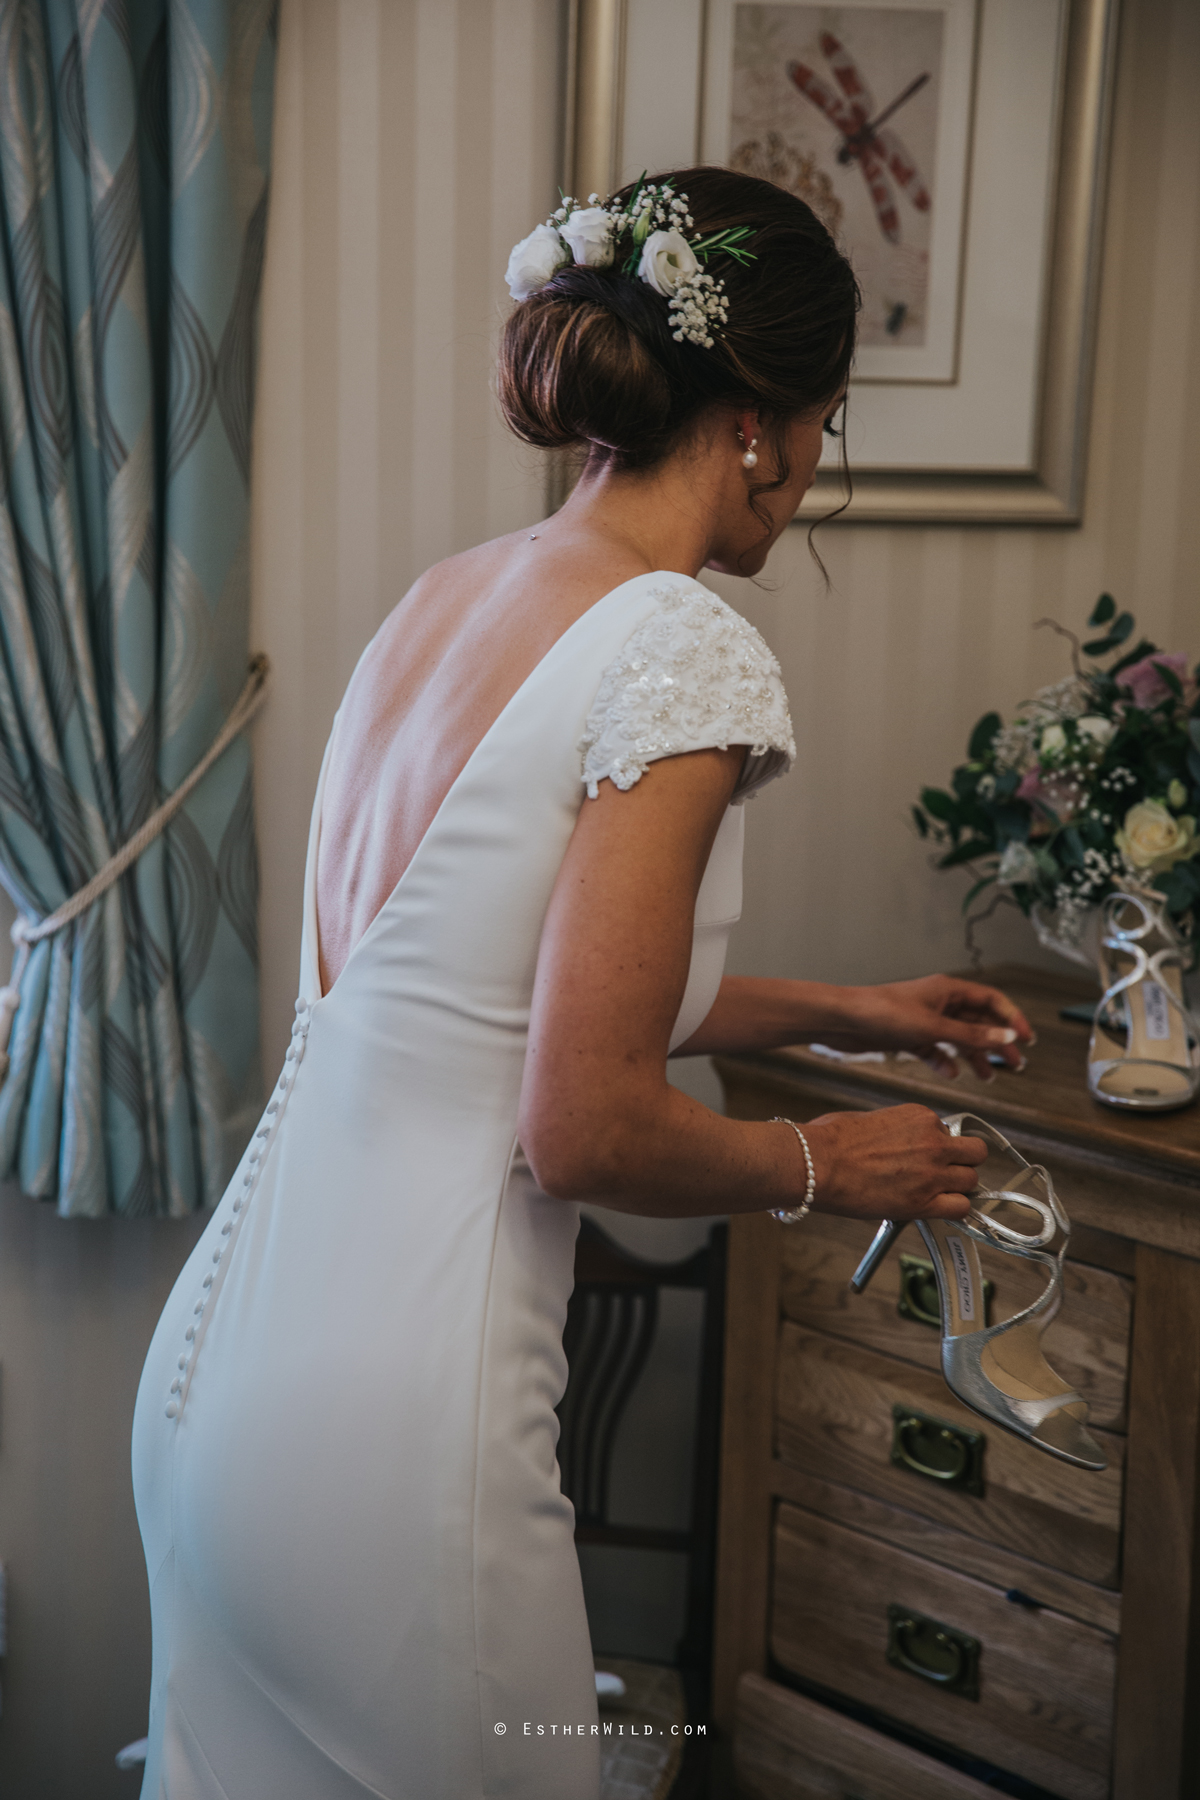 Wootton_Wedding_Copyright_Esther_Wild_Photographer_IMG_0534.jpg